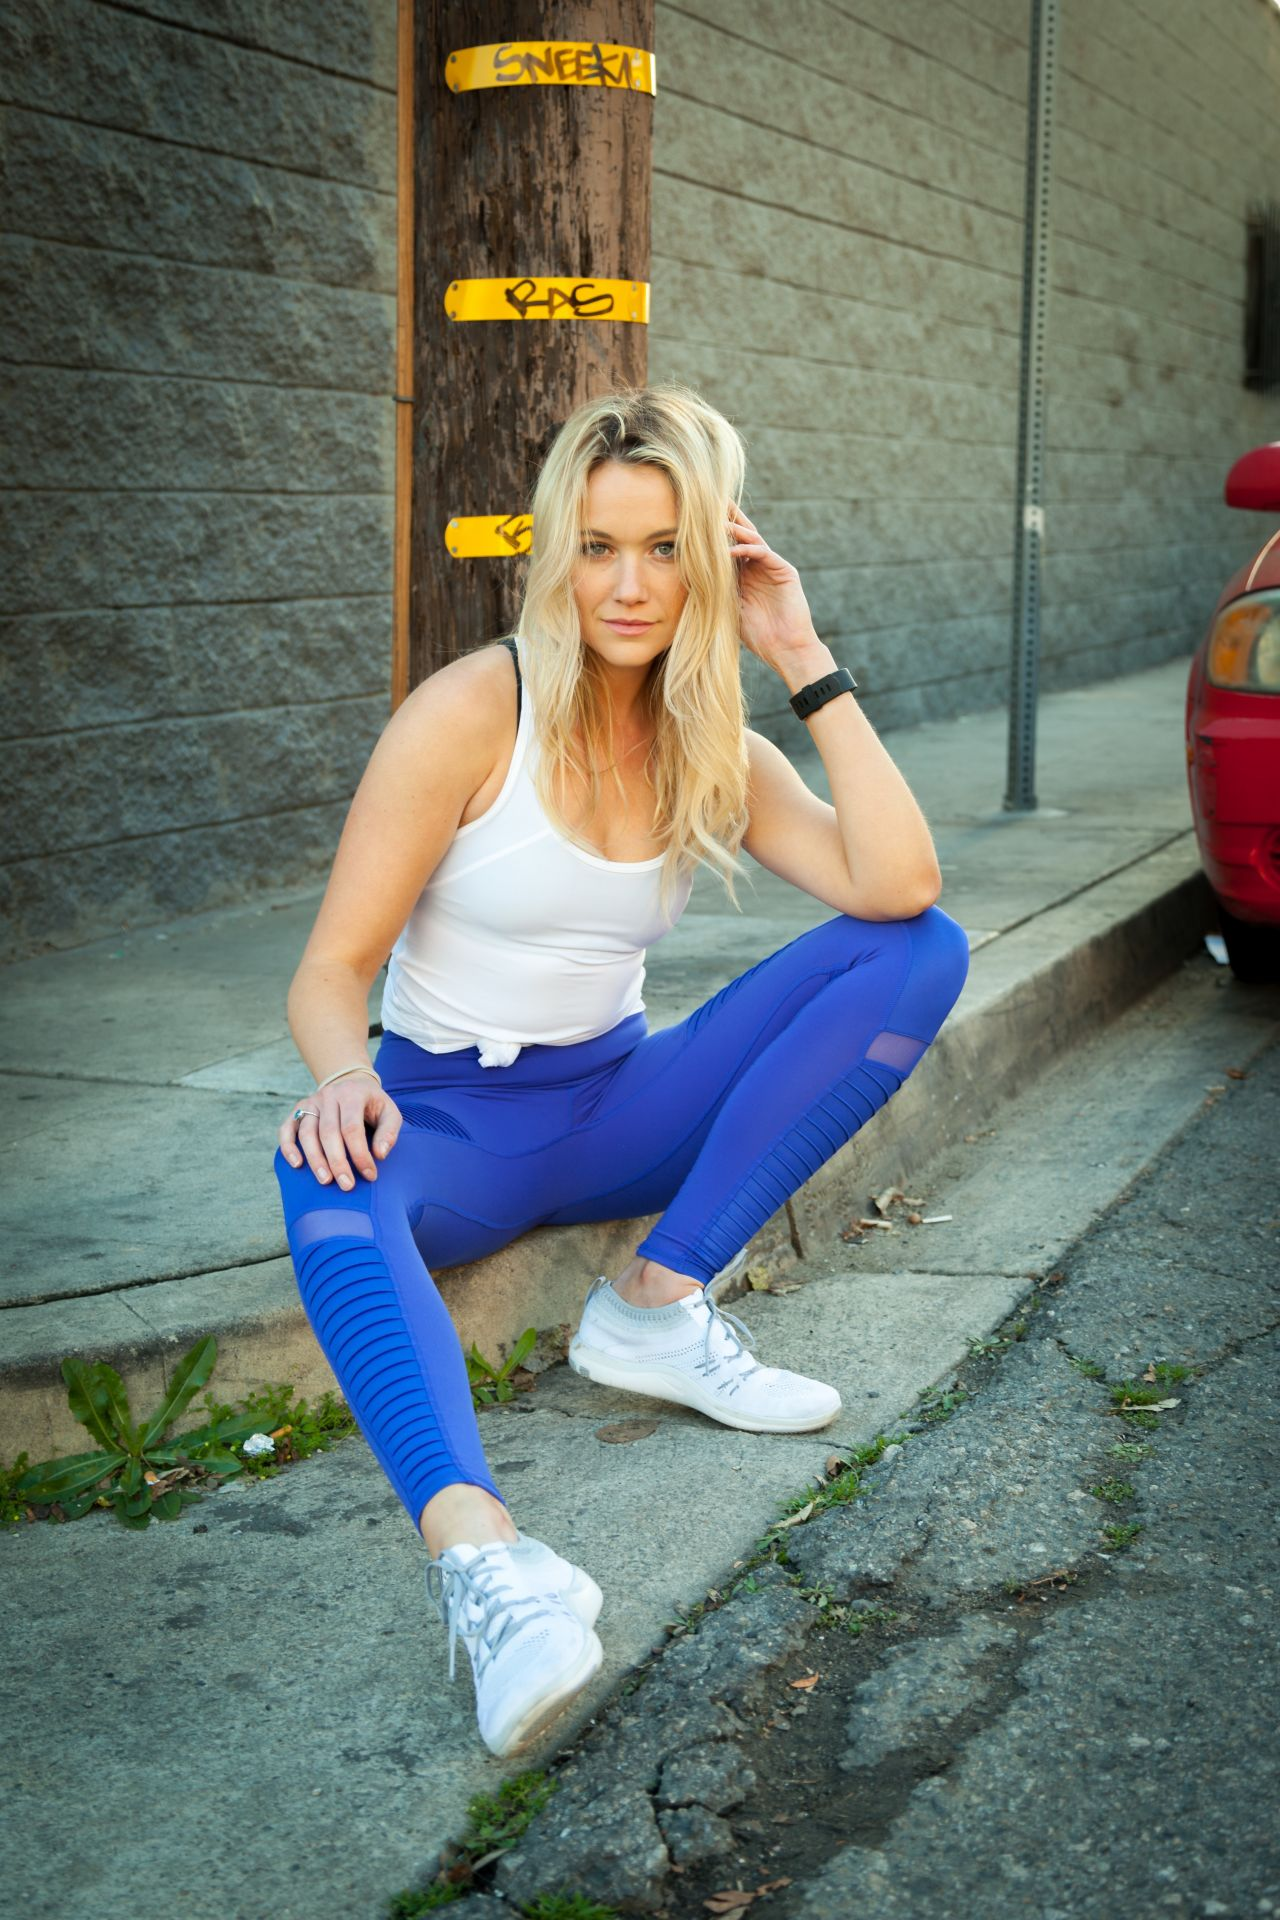 Katrina Bowden - What I Eat Part II The Busy Babe Edition, February 2017